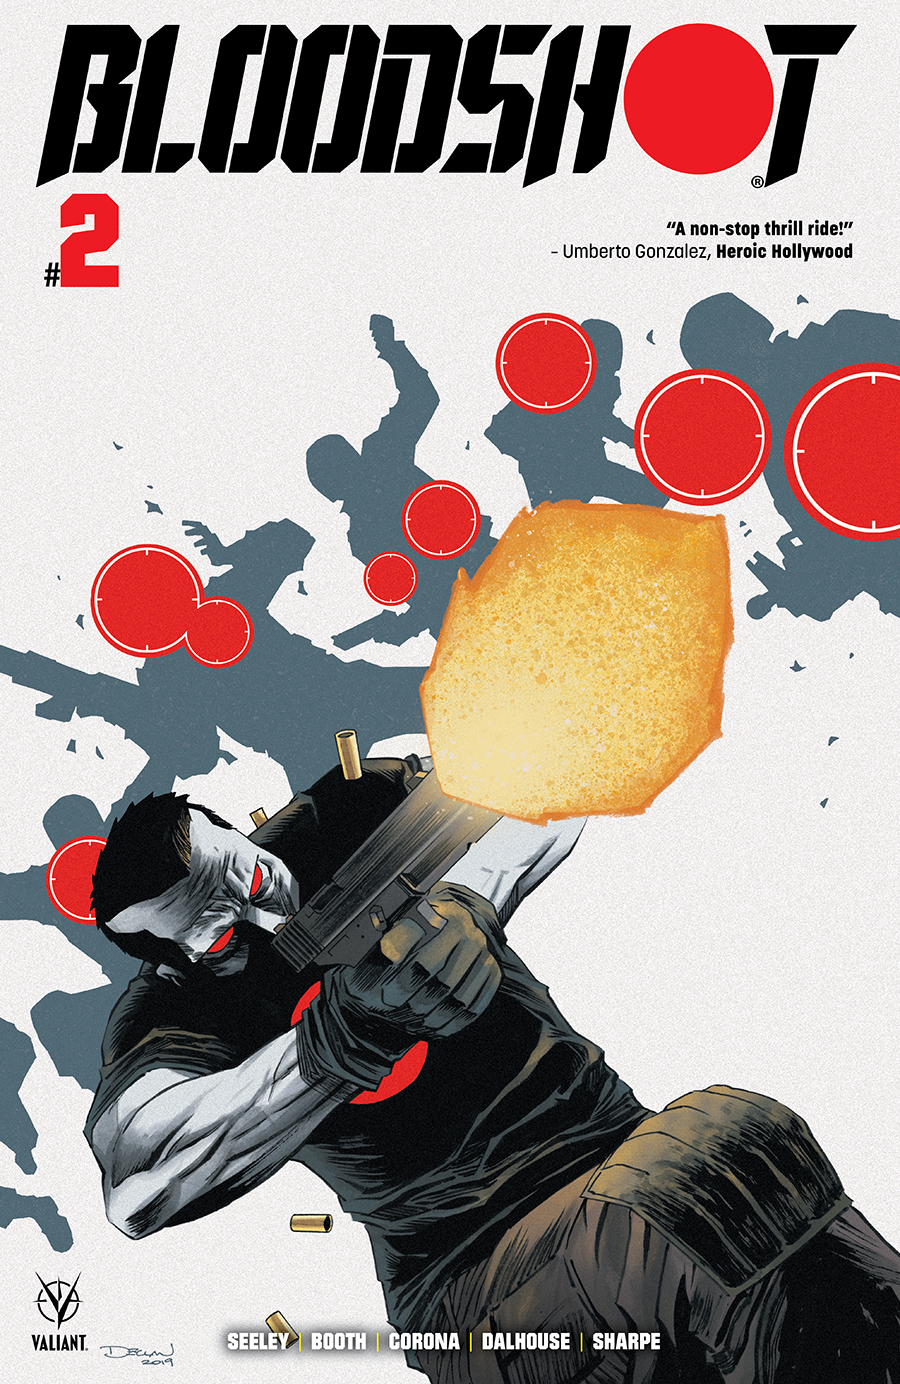 Bloodshot #2, Valiant